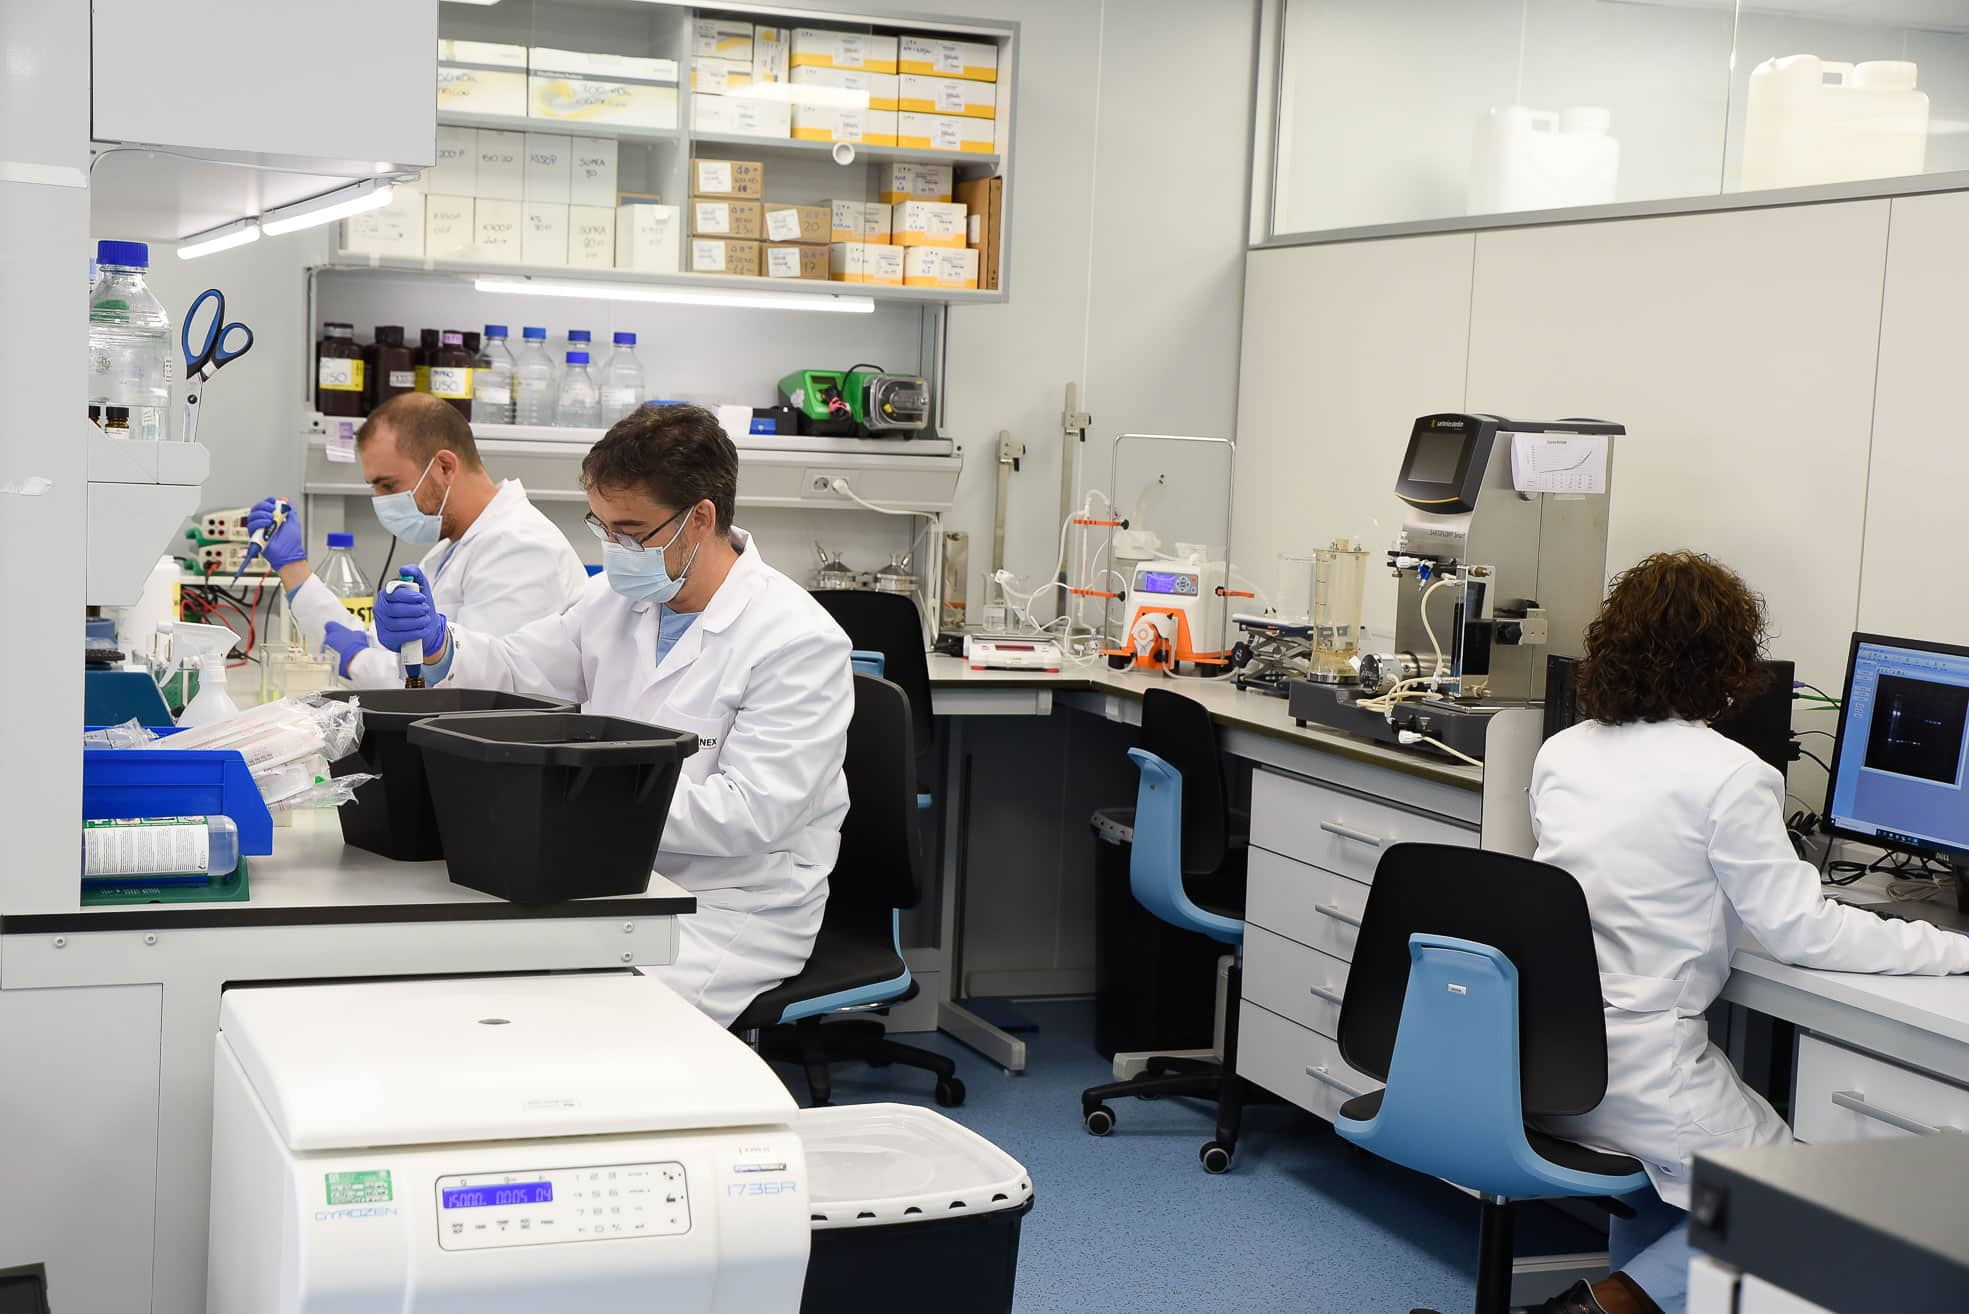 R&D Laboratory at Algenex facilities in Tres Cantos (Madrid)